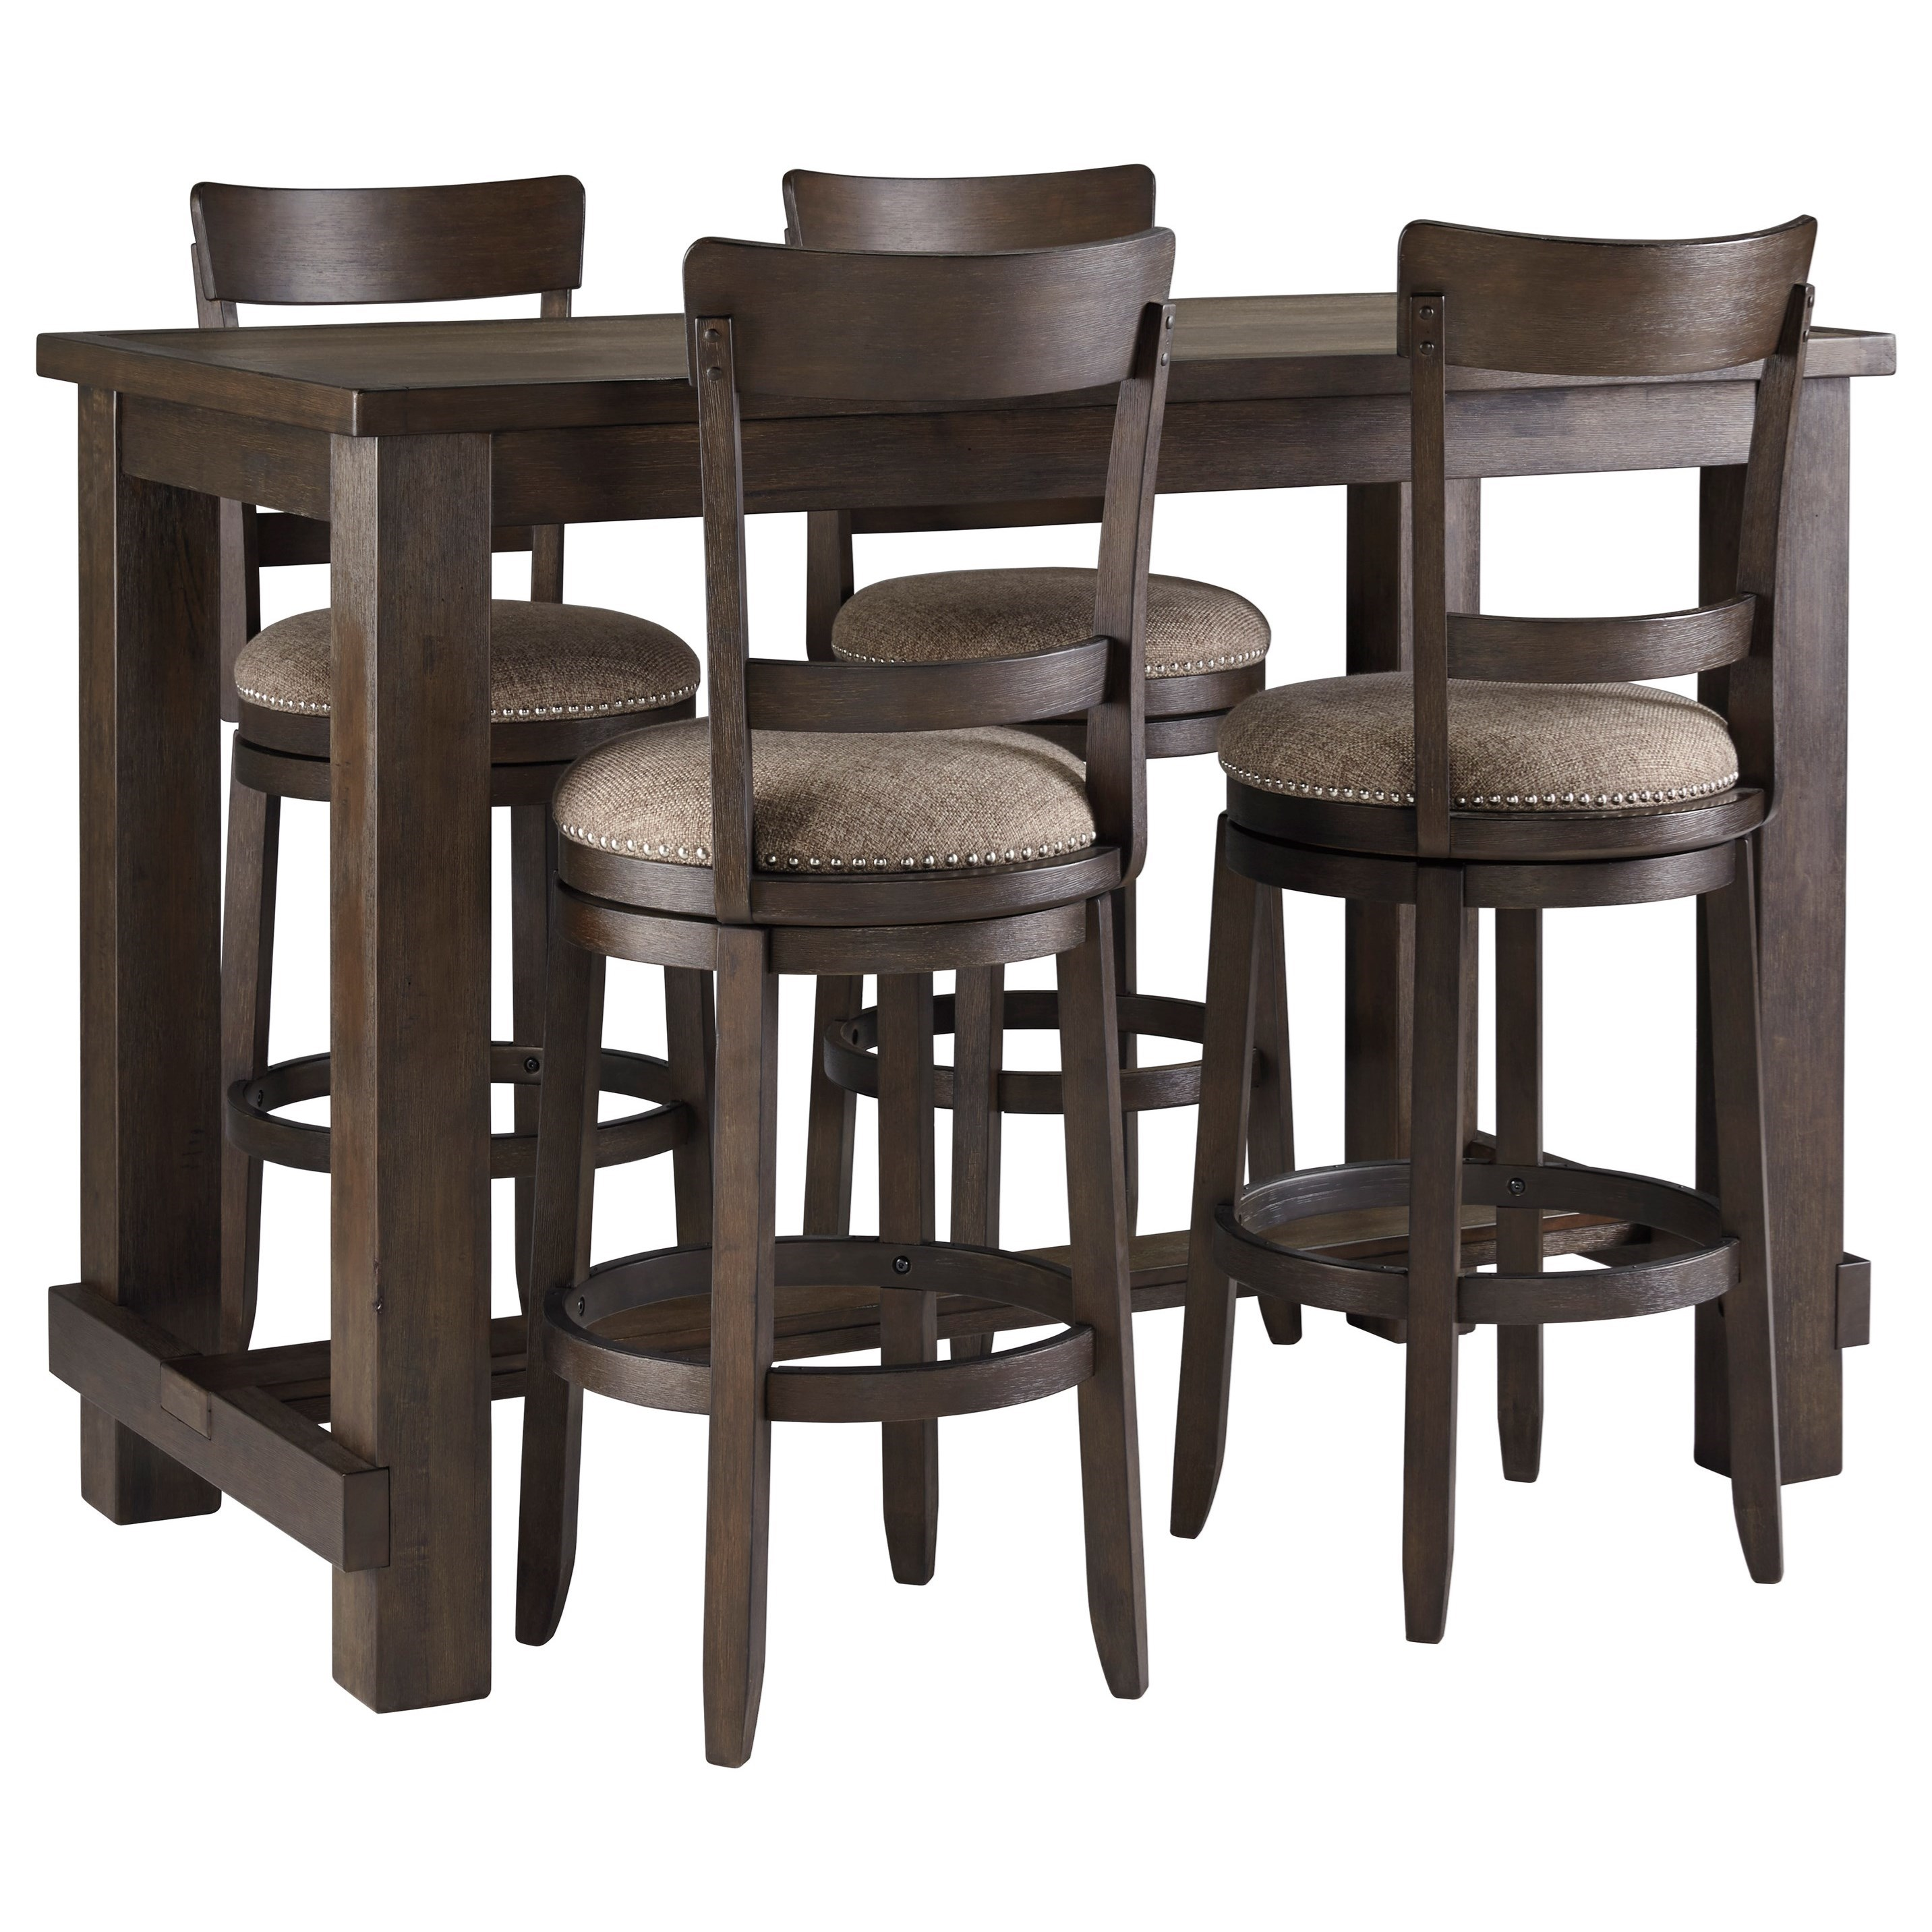 Drewing Five Piece Chair & Pub Table Set by Signature Design by Ashley at Darvin Furniture